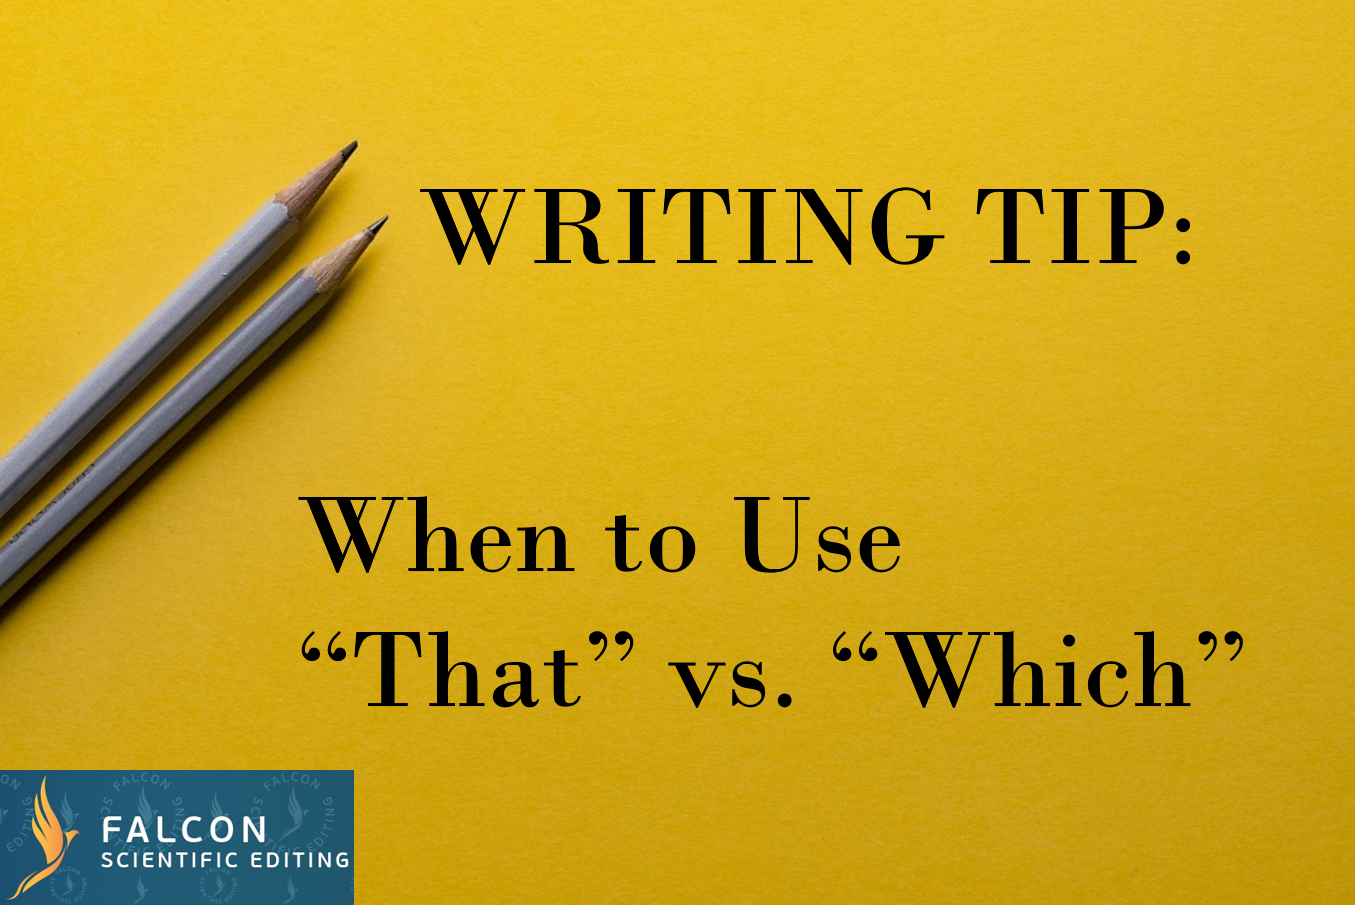 Writing tip: When to Use